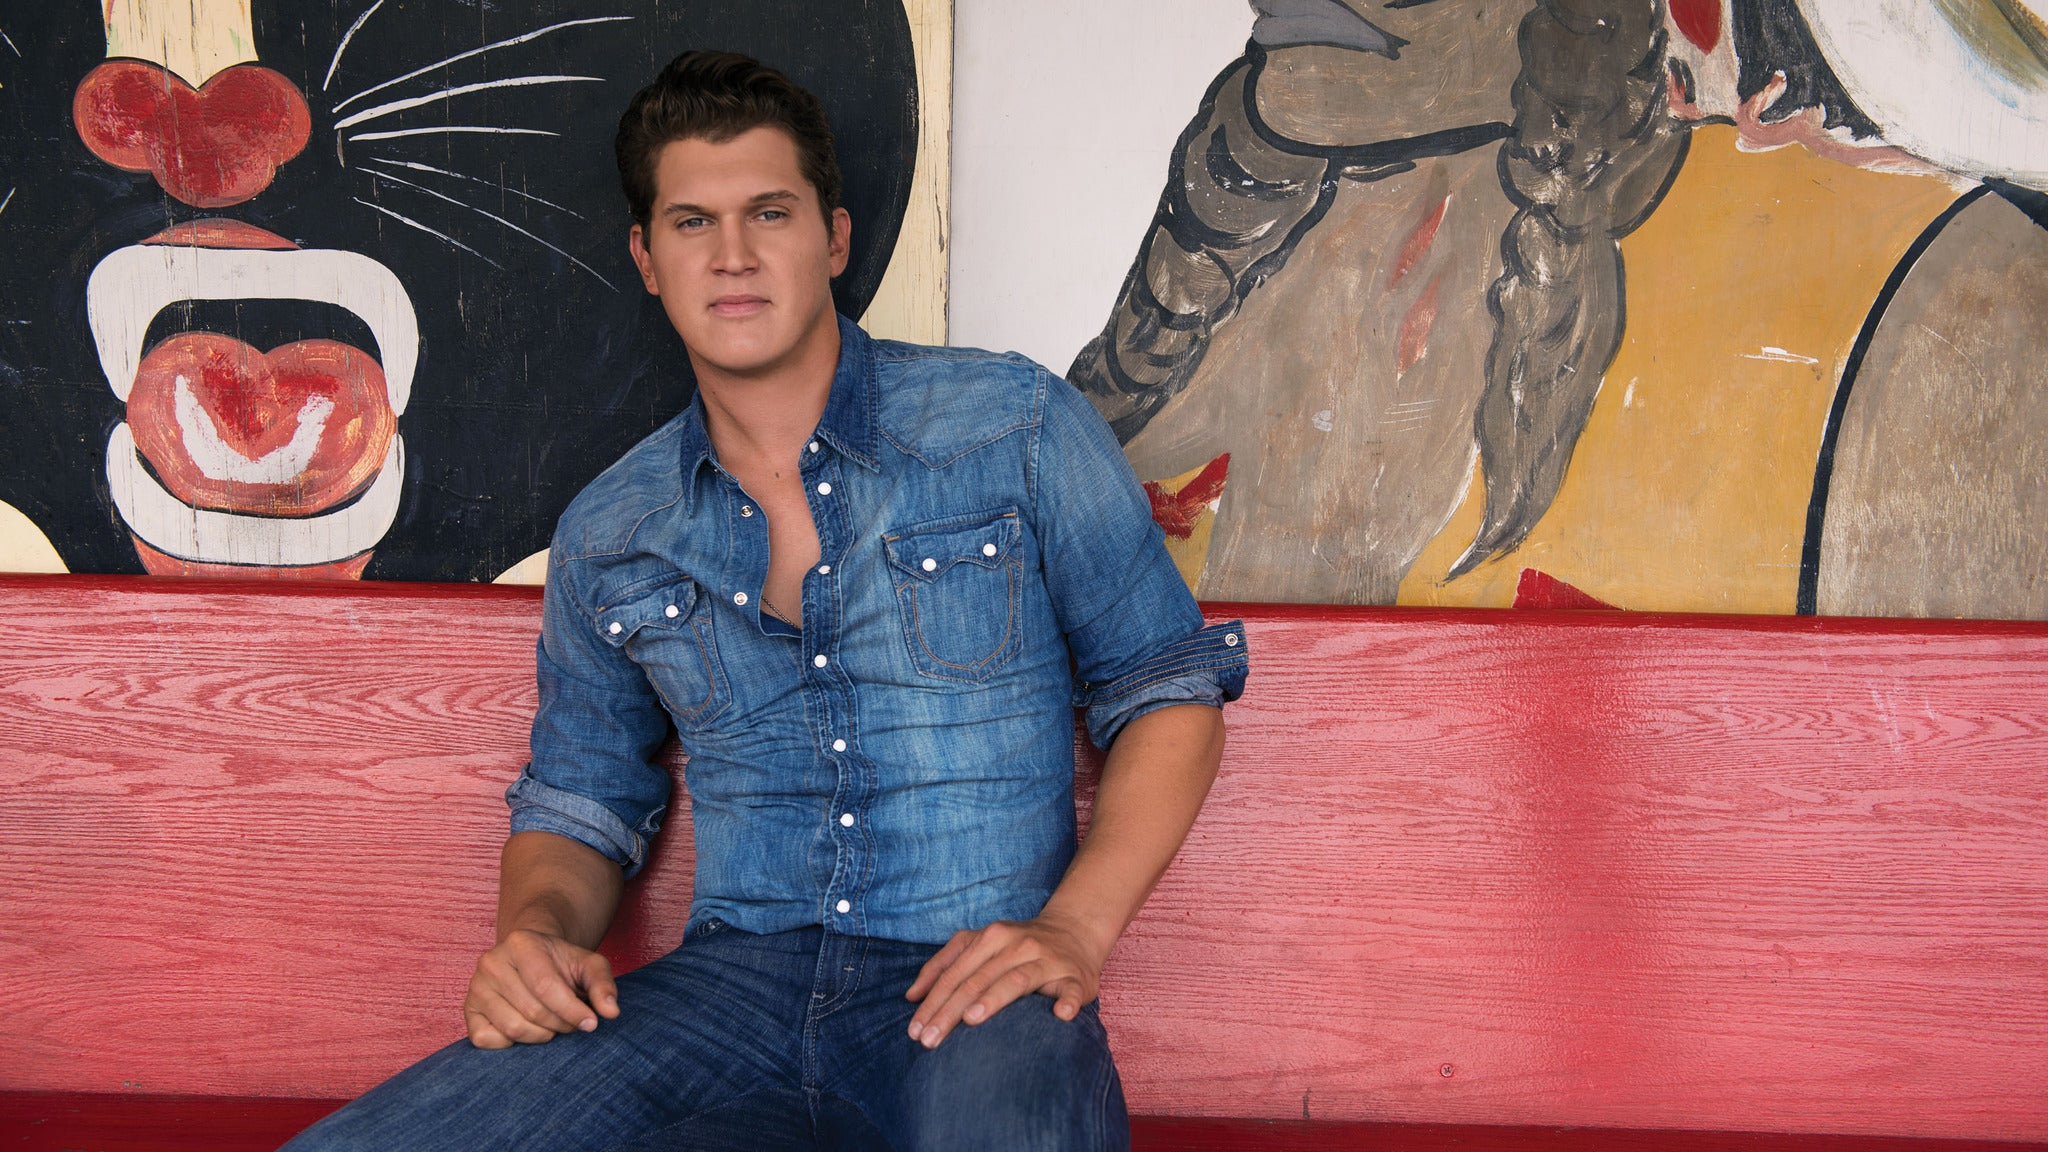 Jon Pardi at The Ballroom at Graton Resort